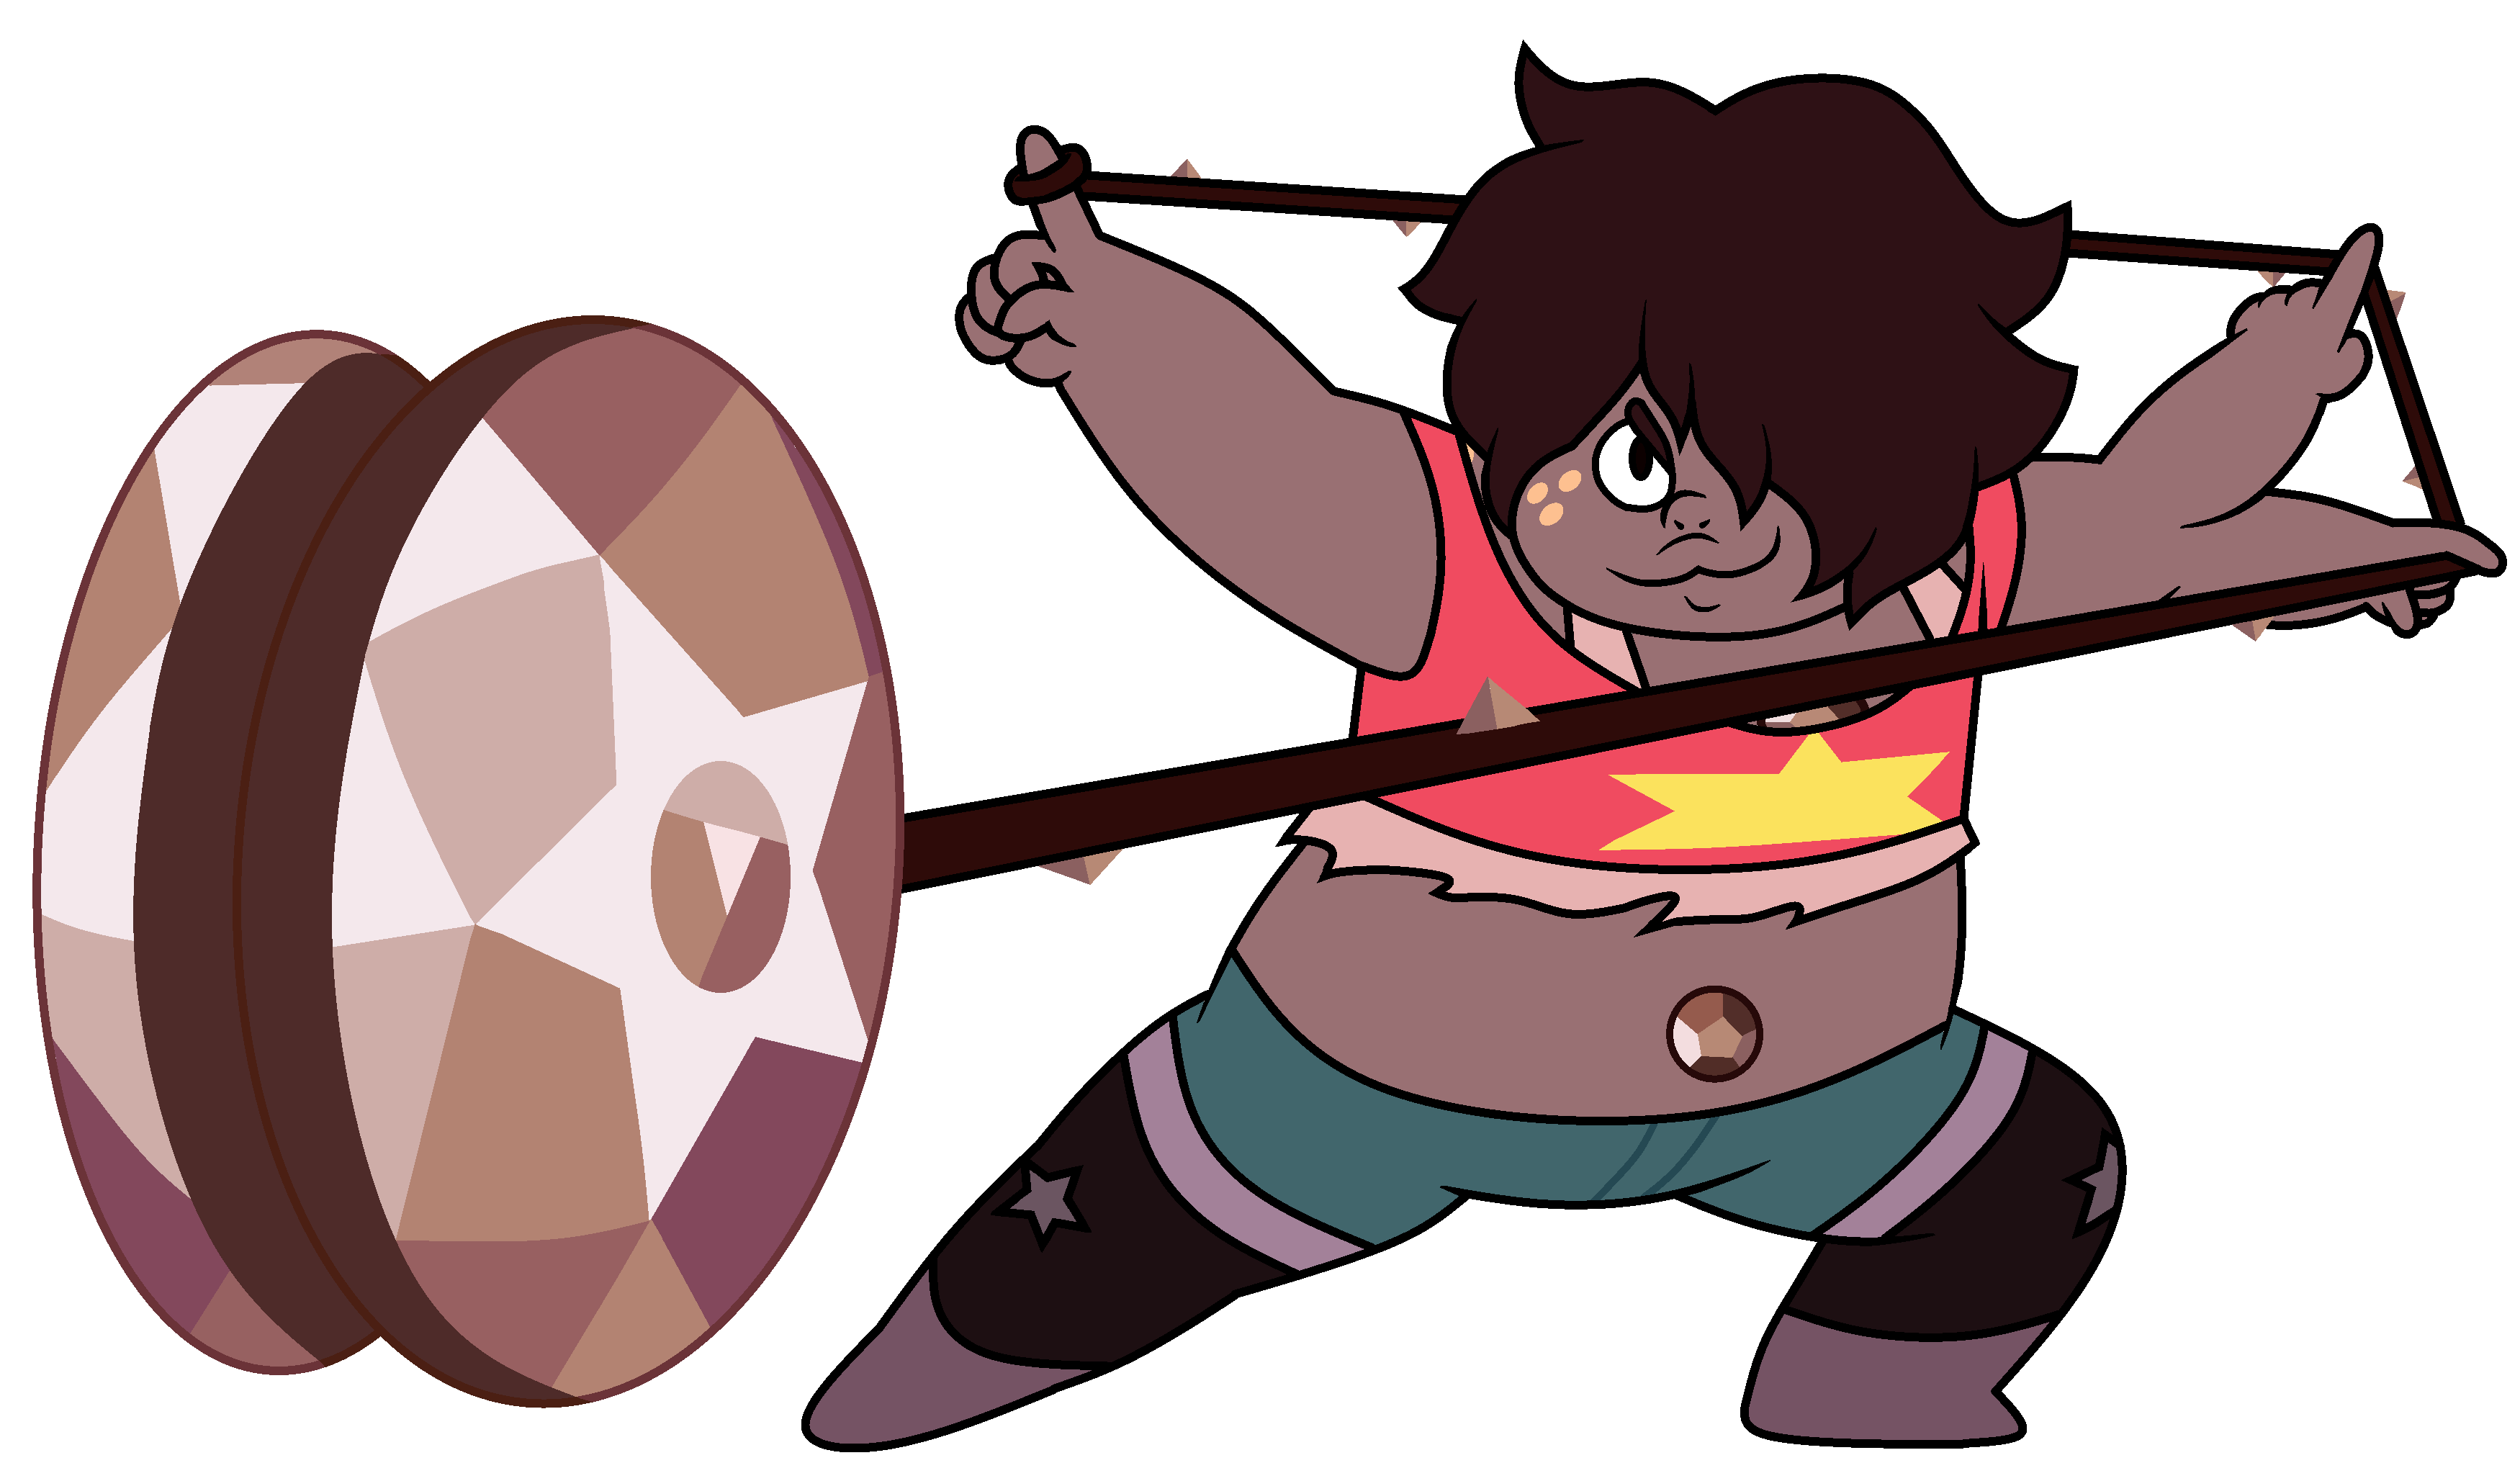 Worry clipart distraught. Earthlings discussion steven universe